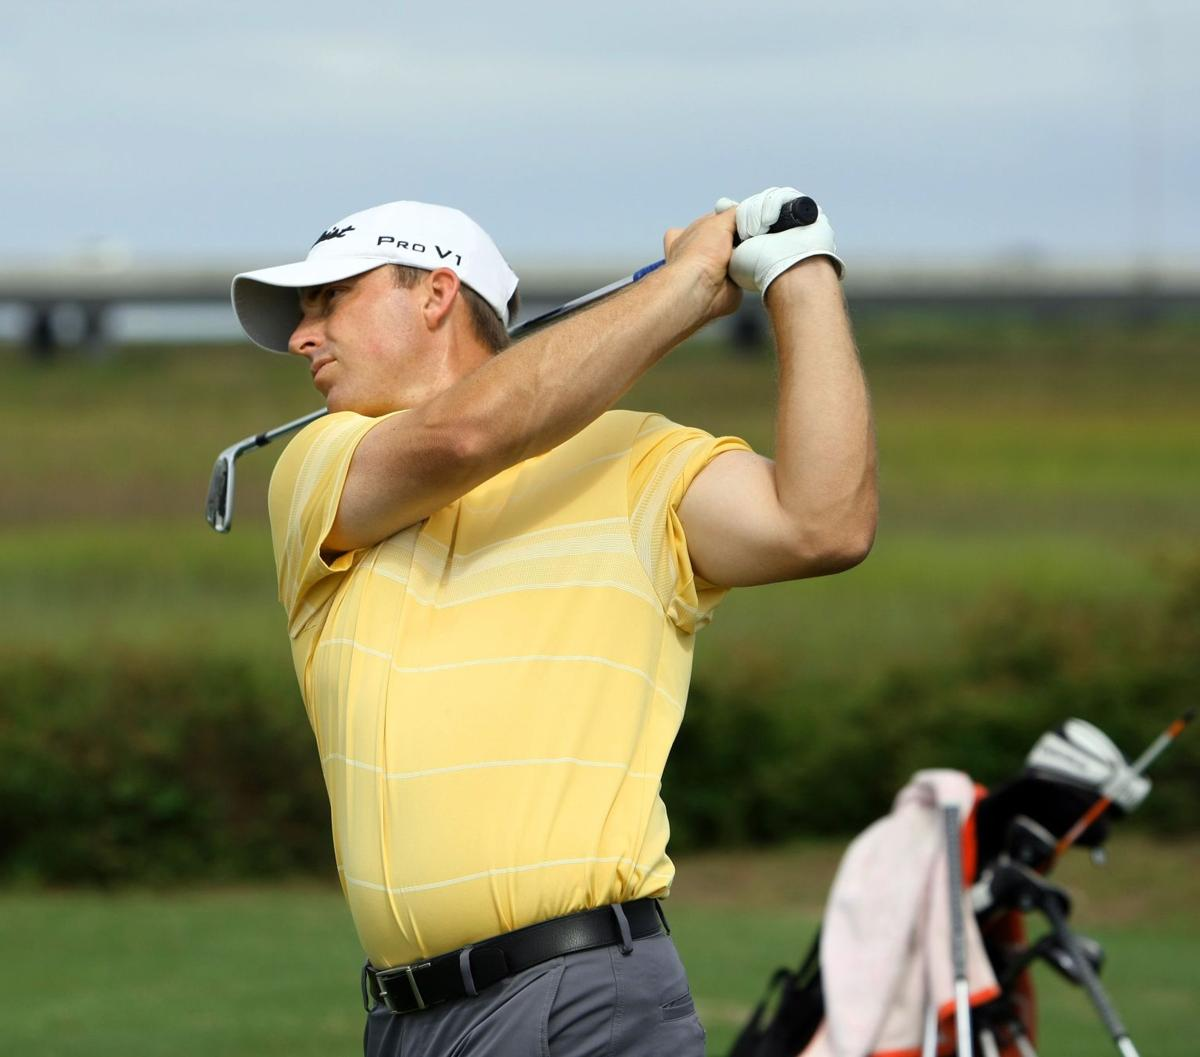 Open road for Nelson Local golfer and new father ready to take on U.S. Open